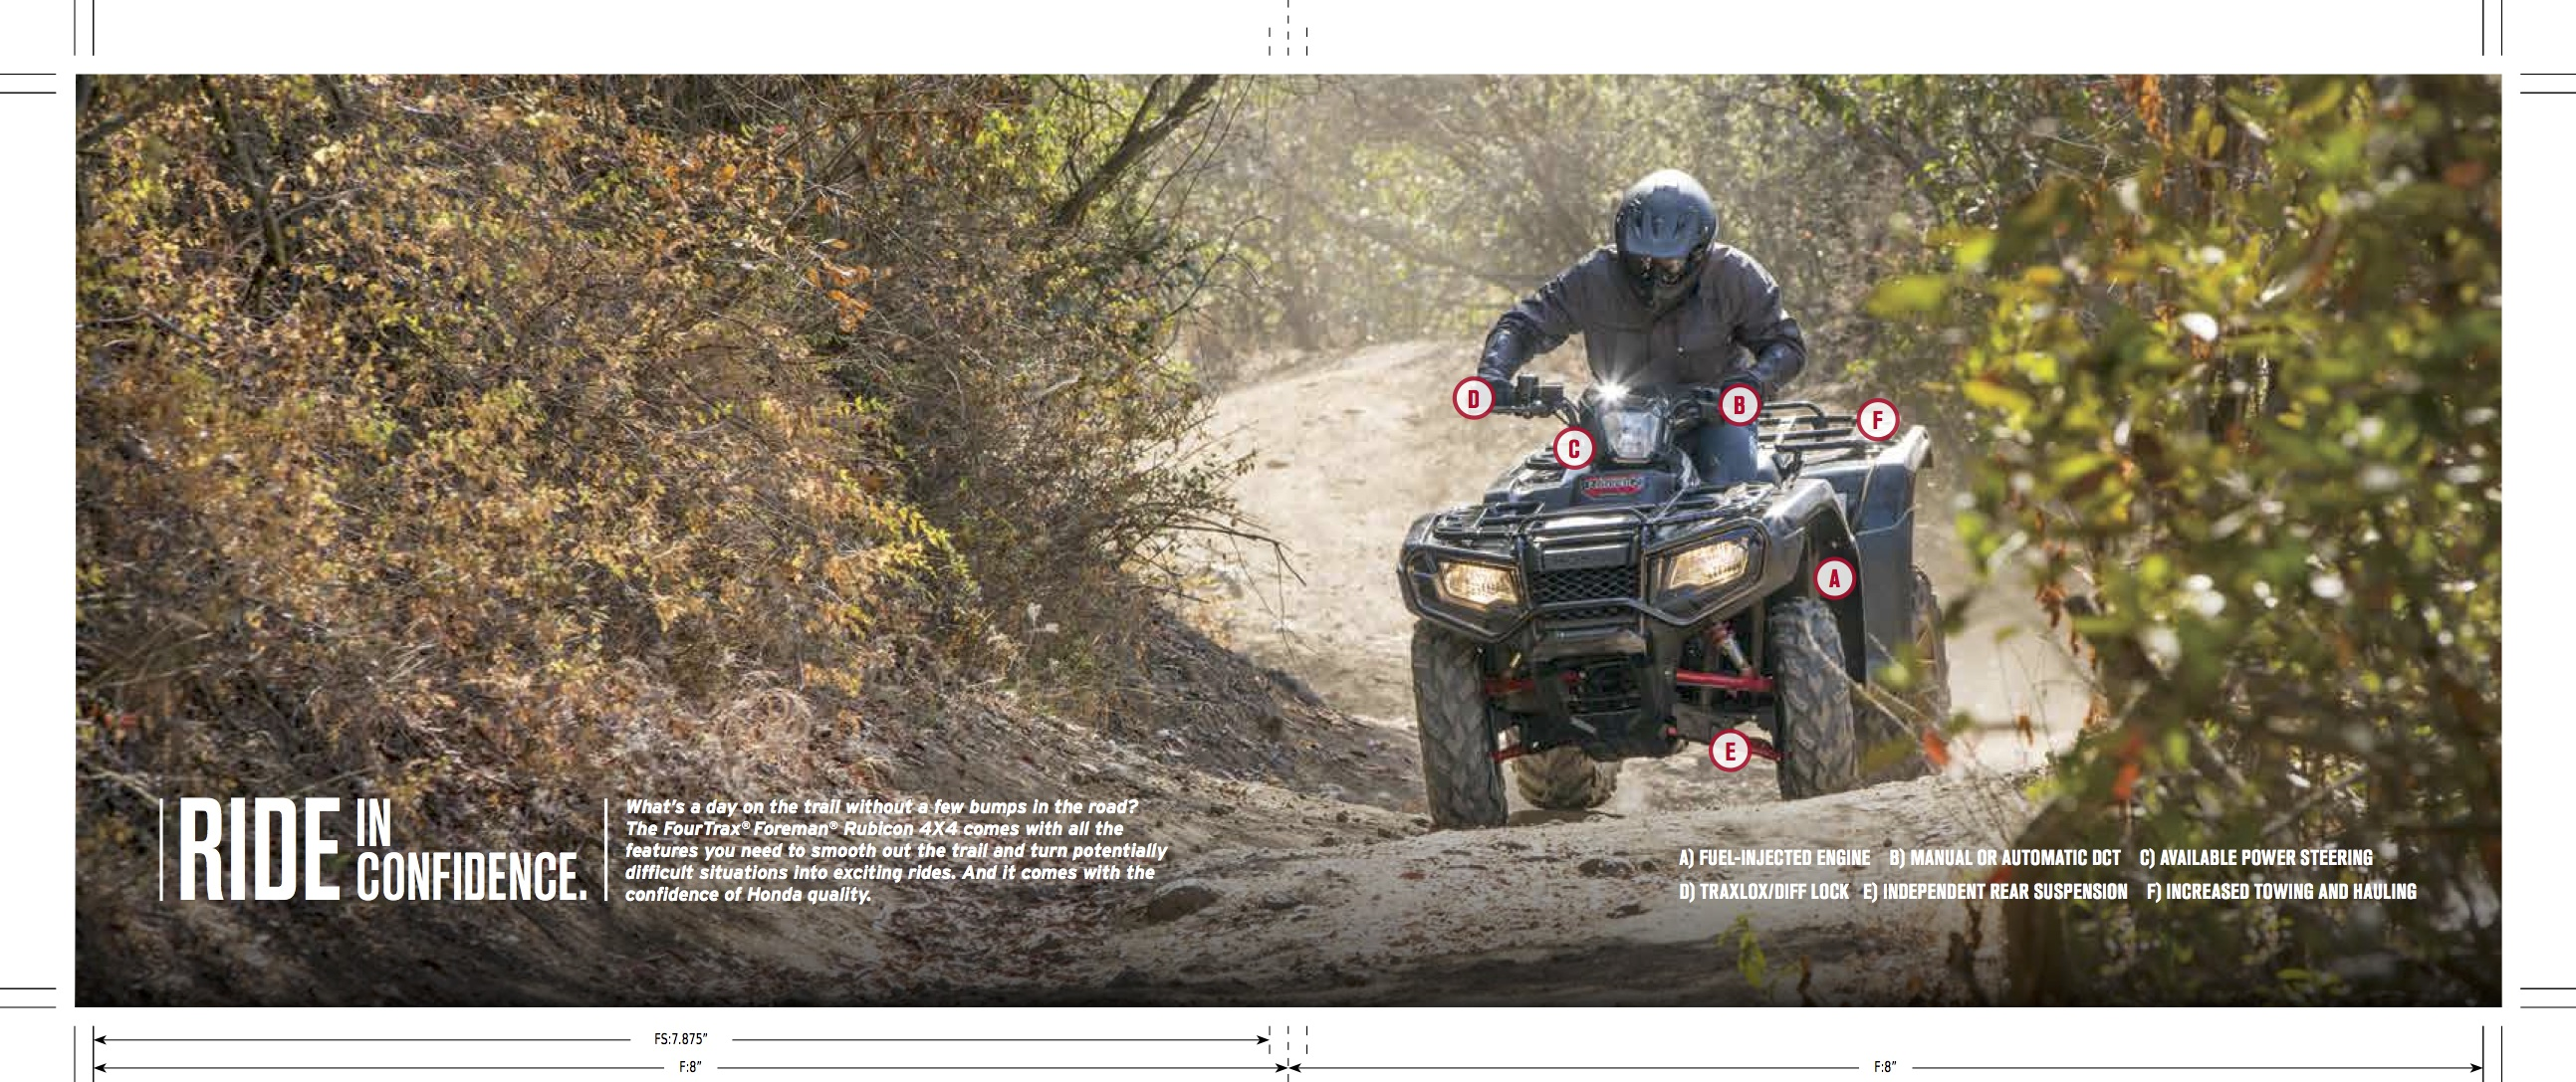 10241356_FY15ATV_Rubicon_Book_8x6 (dragged) 1